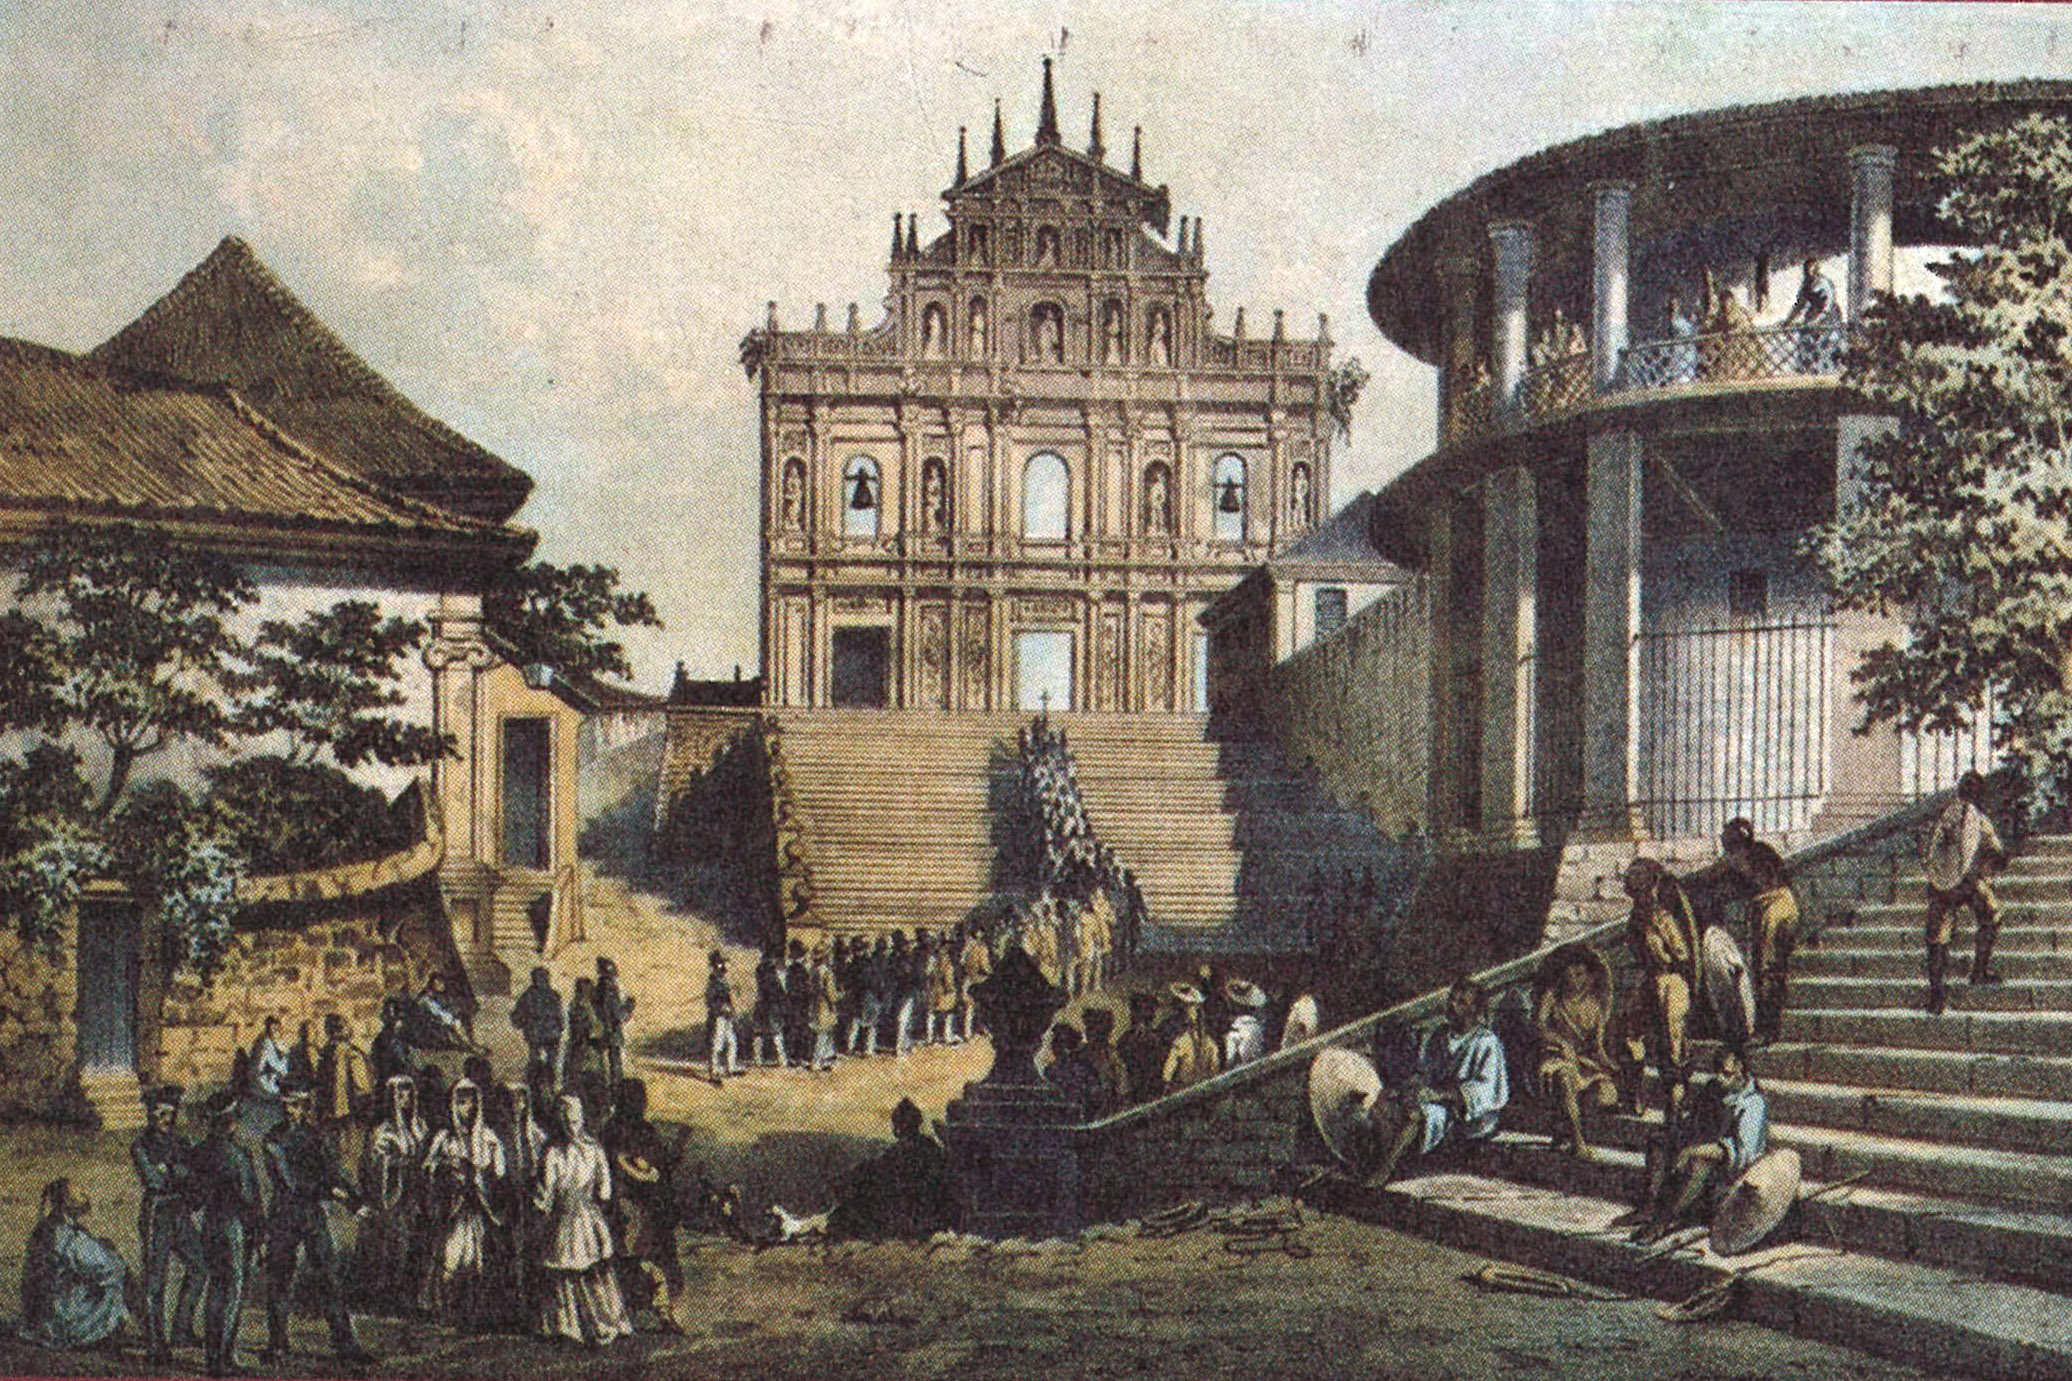 The printing place of St Paul's Cathedral and the Society of Jesus (SJ). Pictured are the ruins of the cathedral and the nearby buildings.